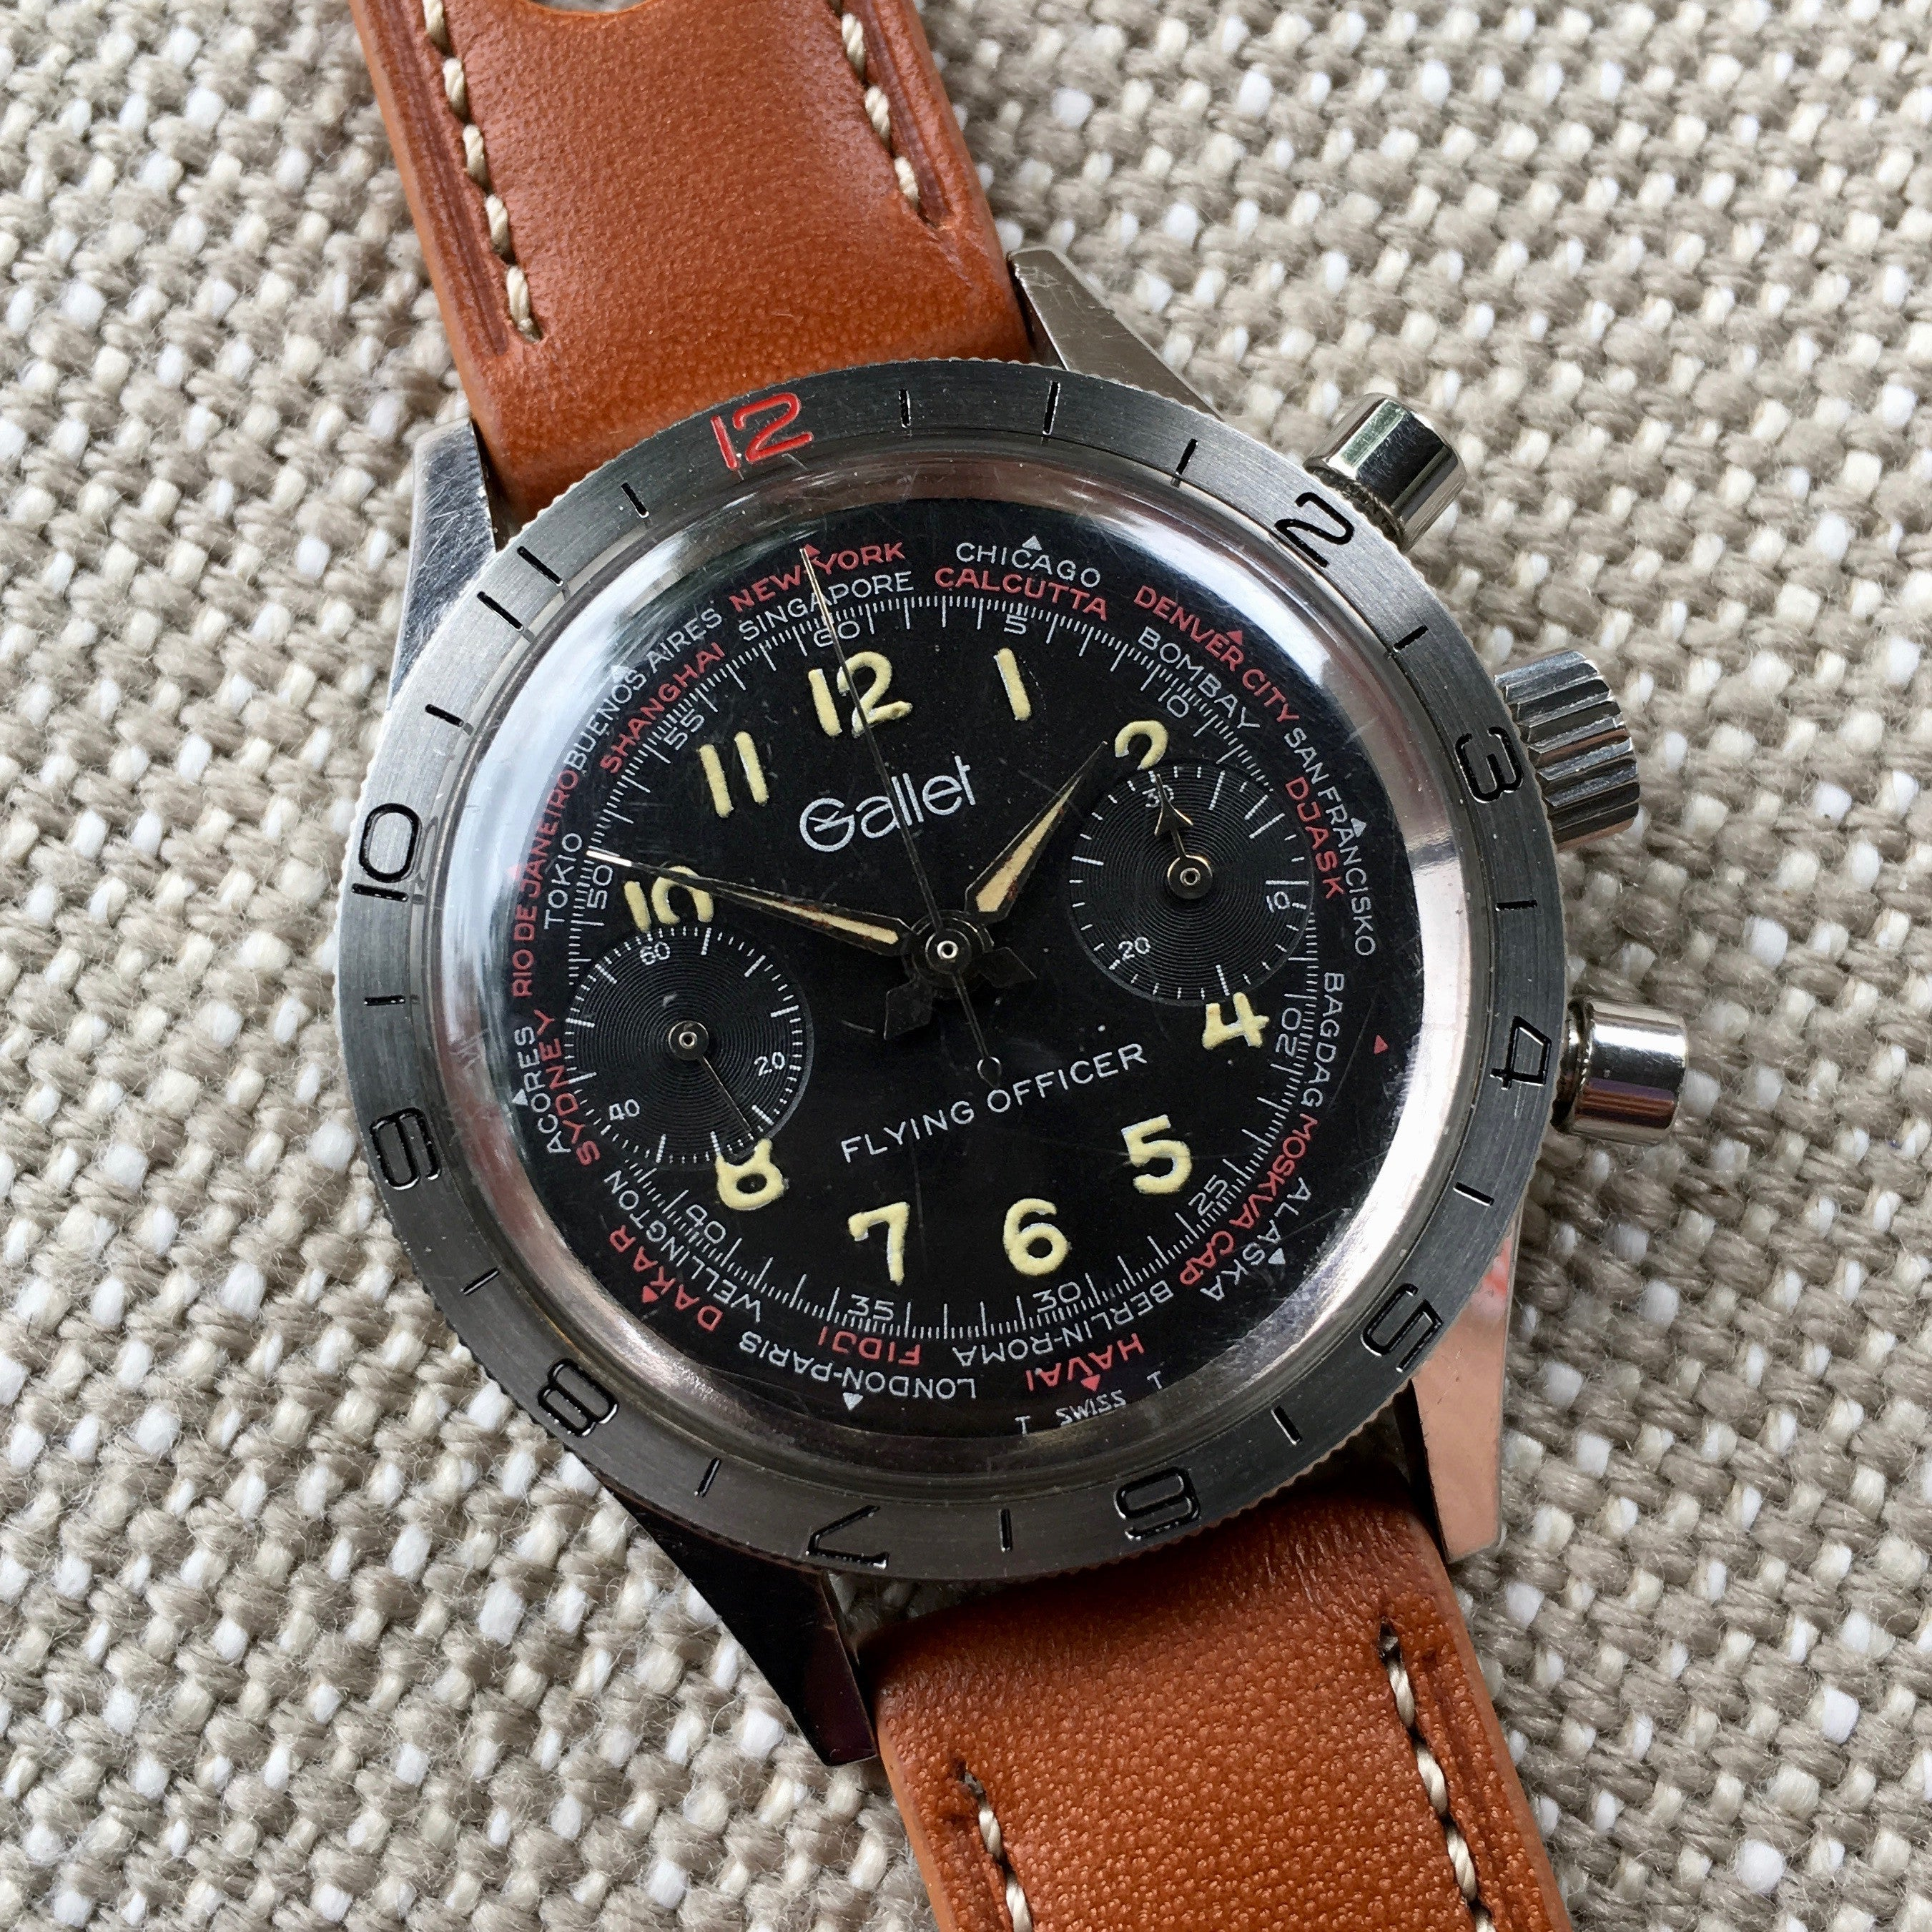 Vintage Gallet Flying Officer Chronograph Landeron Caliber 149 Steel Wristwatch Circa 1970's 3rd Gen.